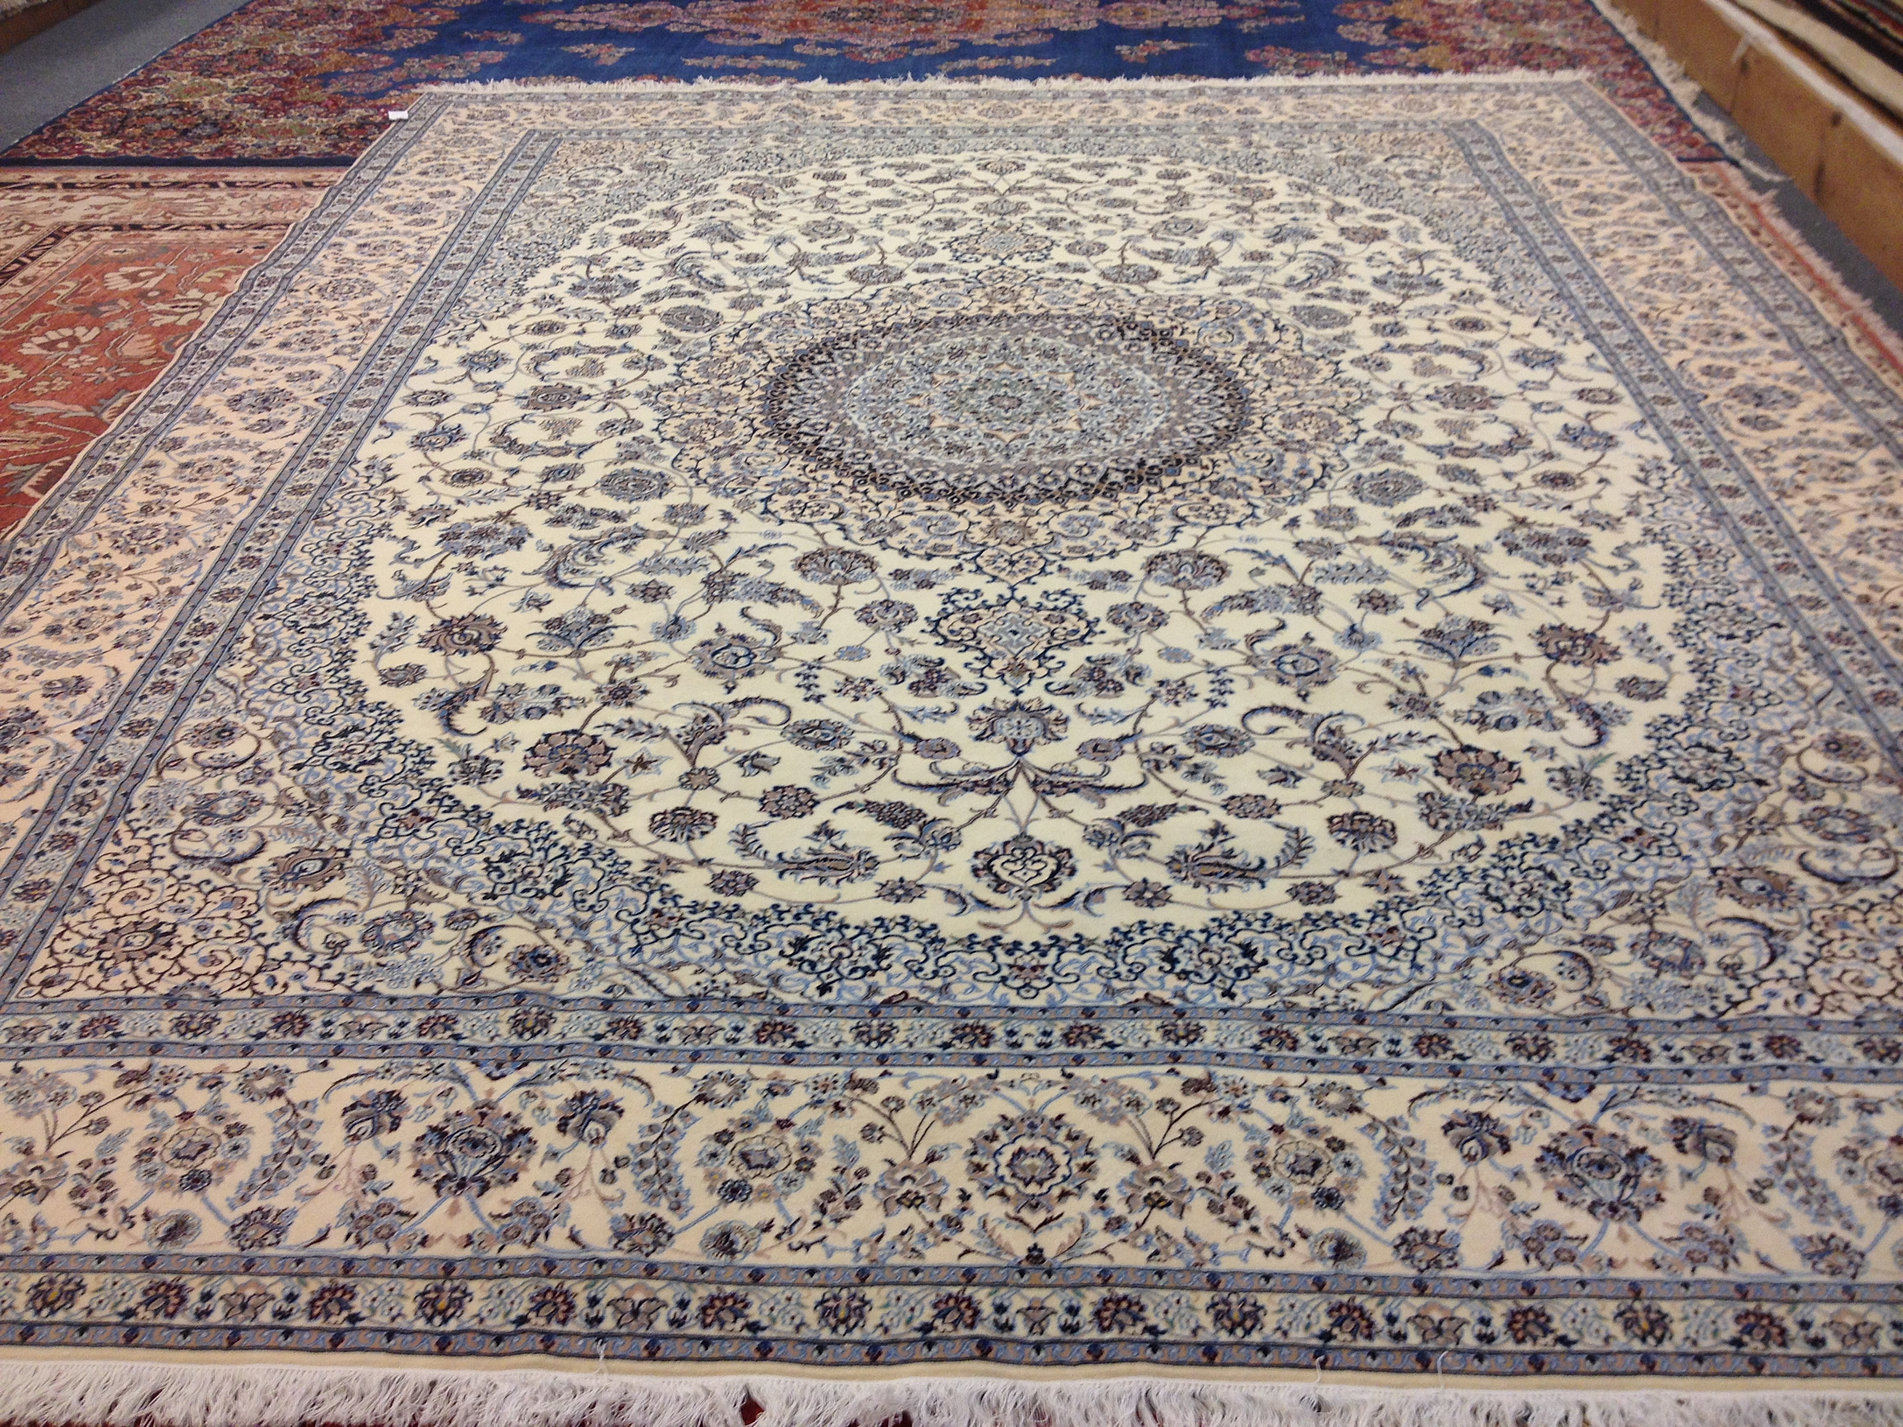 The Rug Merchant 2. Avon Rug Gallery (formerly Moosavi Persian Rugs) Offers  An Array Of Traditional And Modern